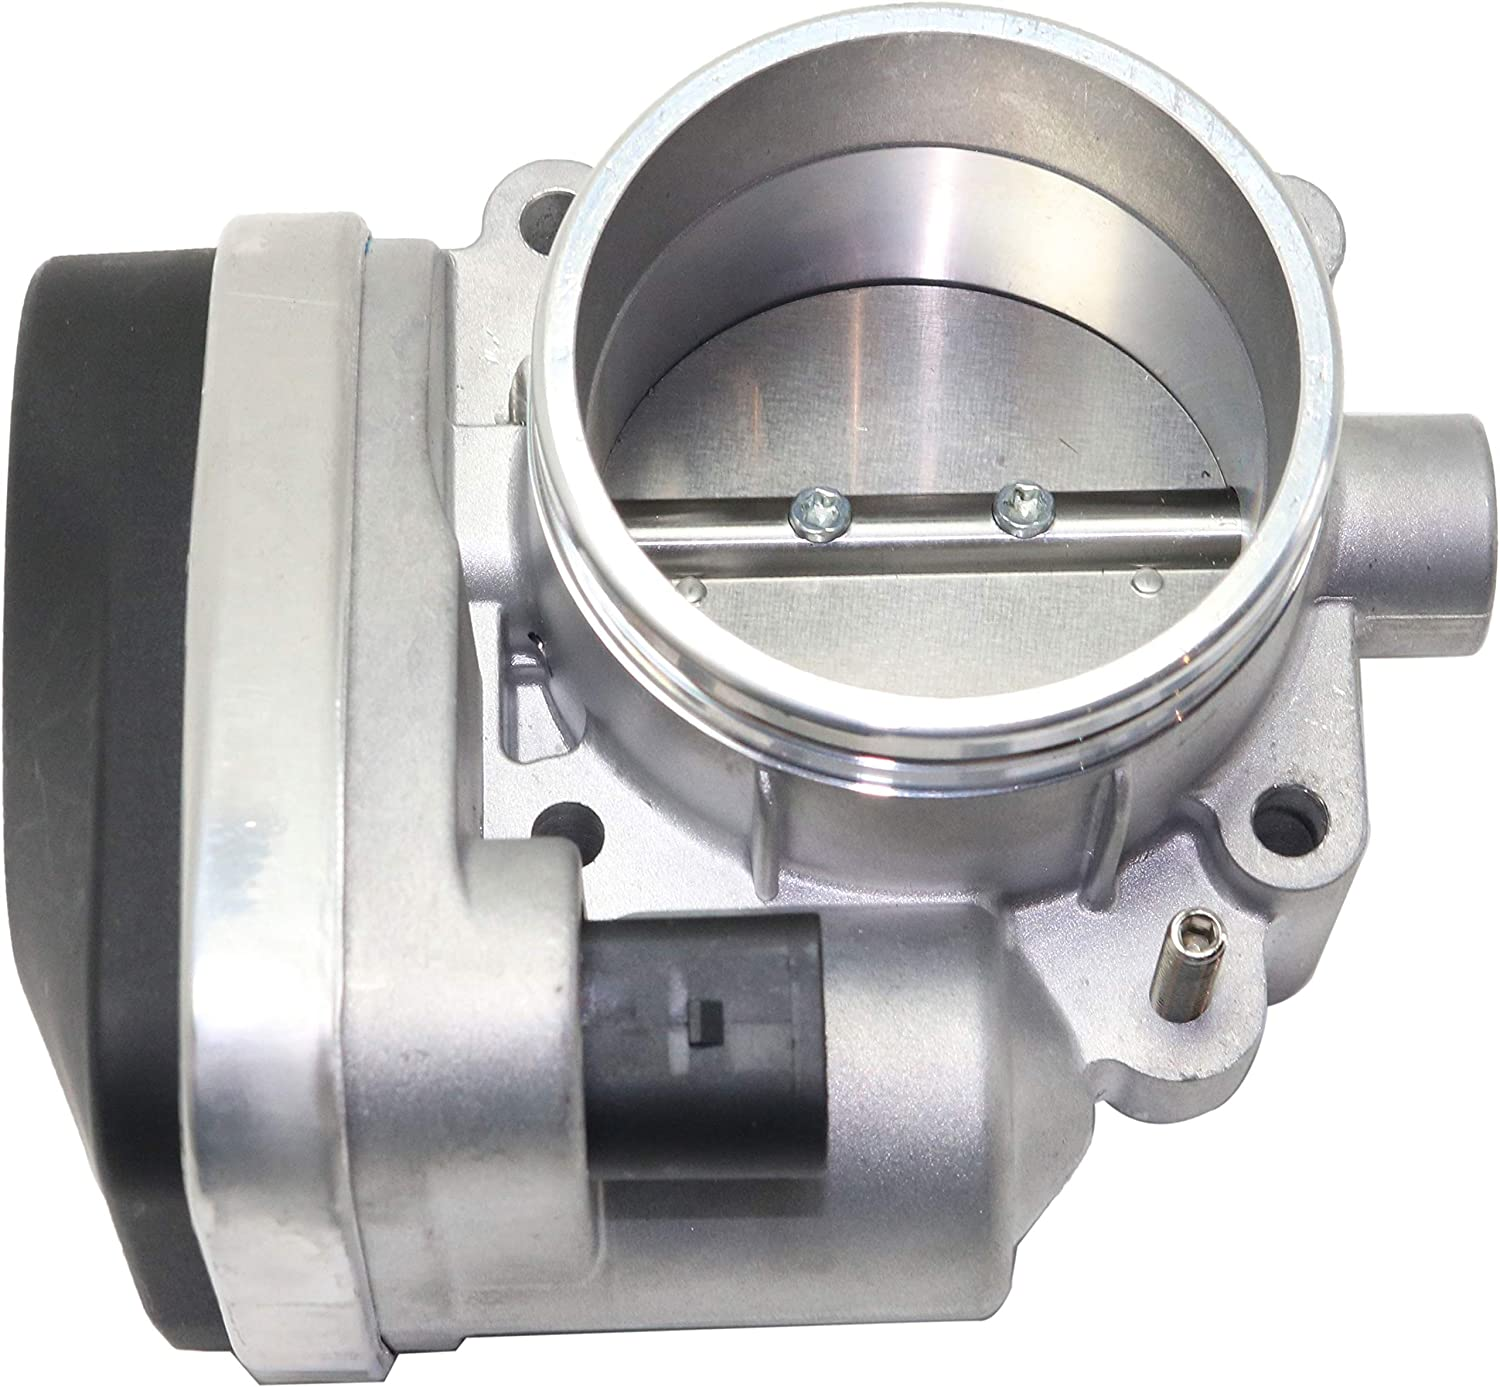 Garage-Pro Throttle Body Compatible with 525i Bombing free 2021 autumn and winter new shipping 2001-2005 BMW 325i